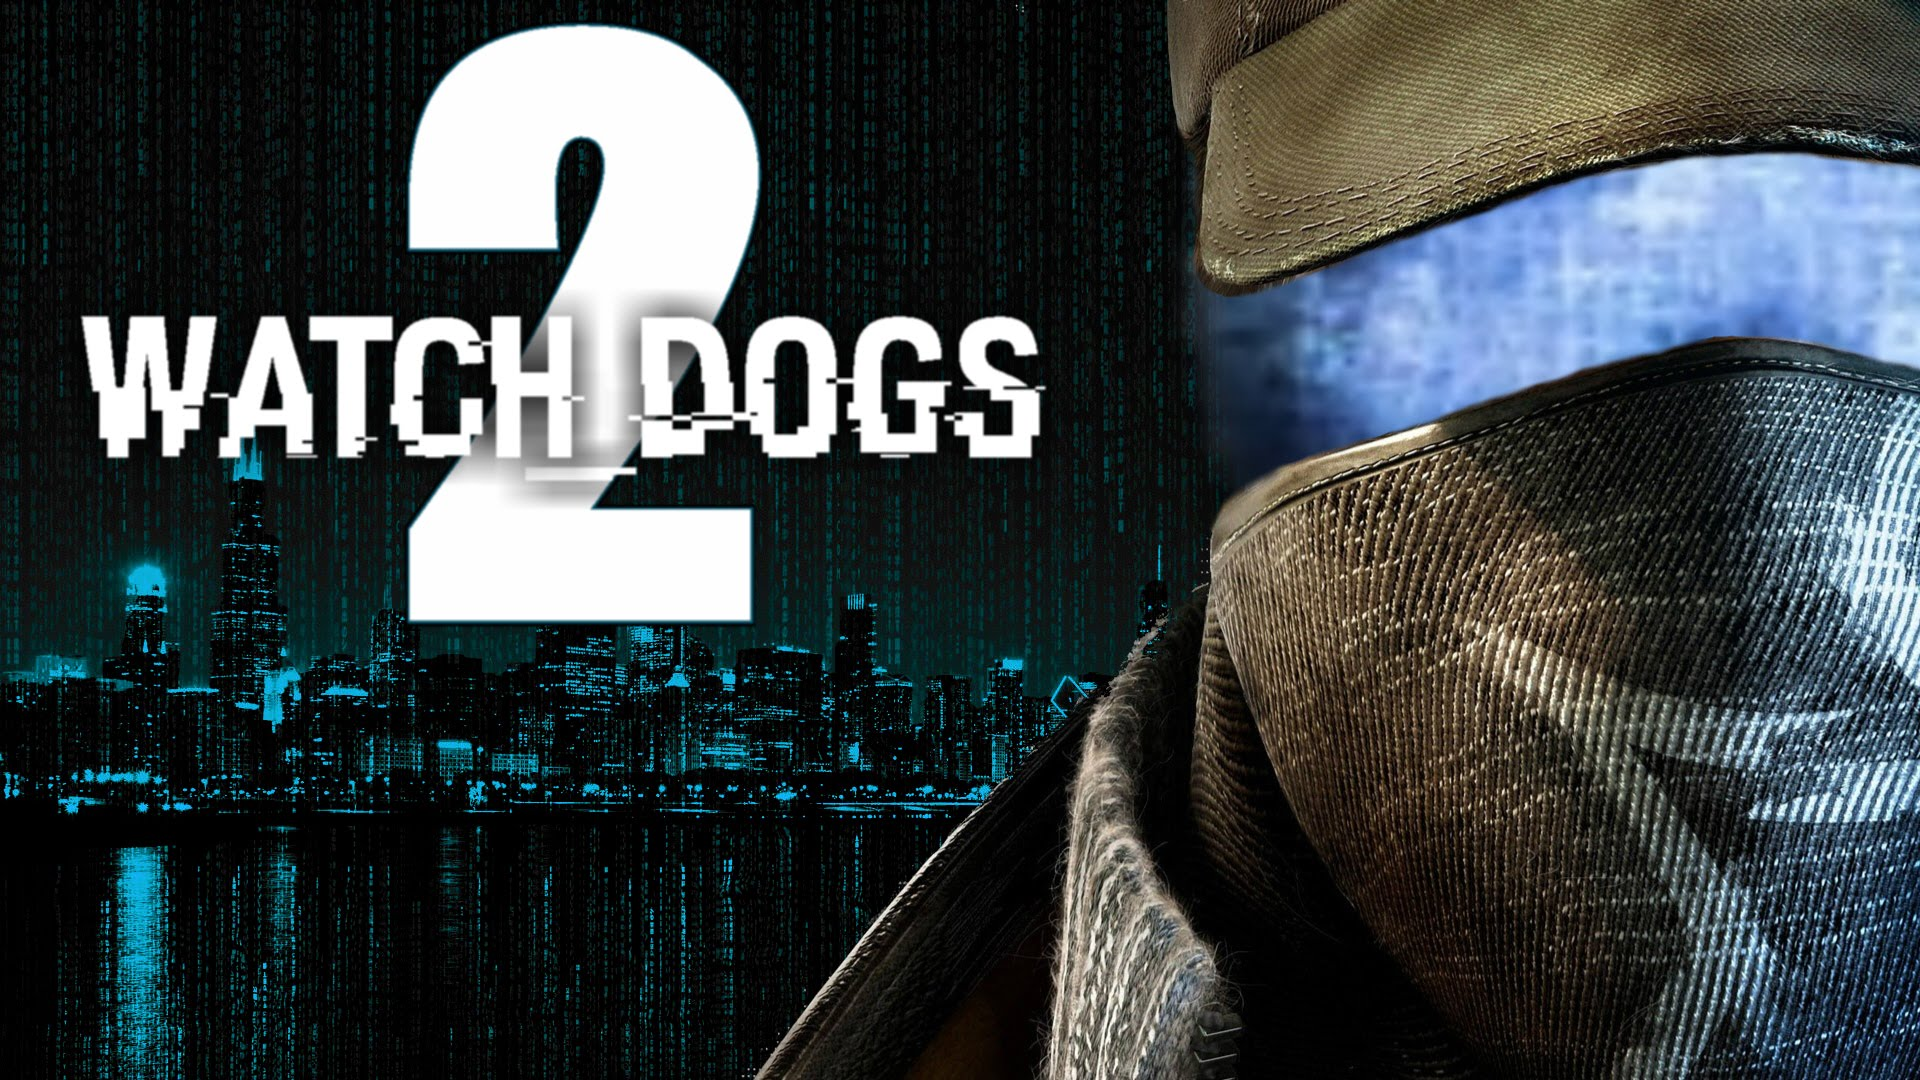 What Do You Get With The Deluxe Watch Dogs